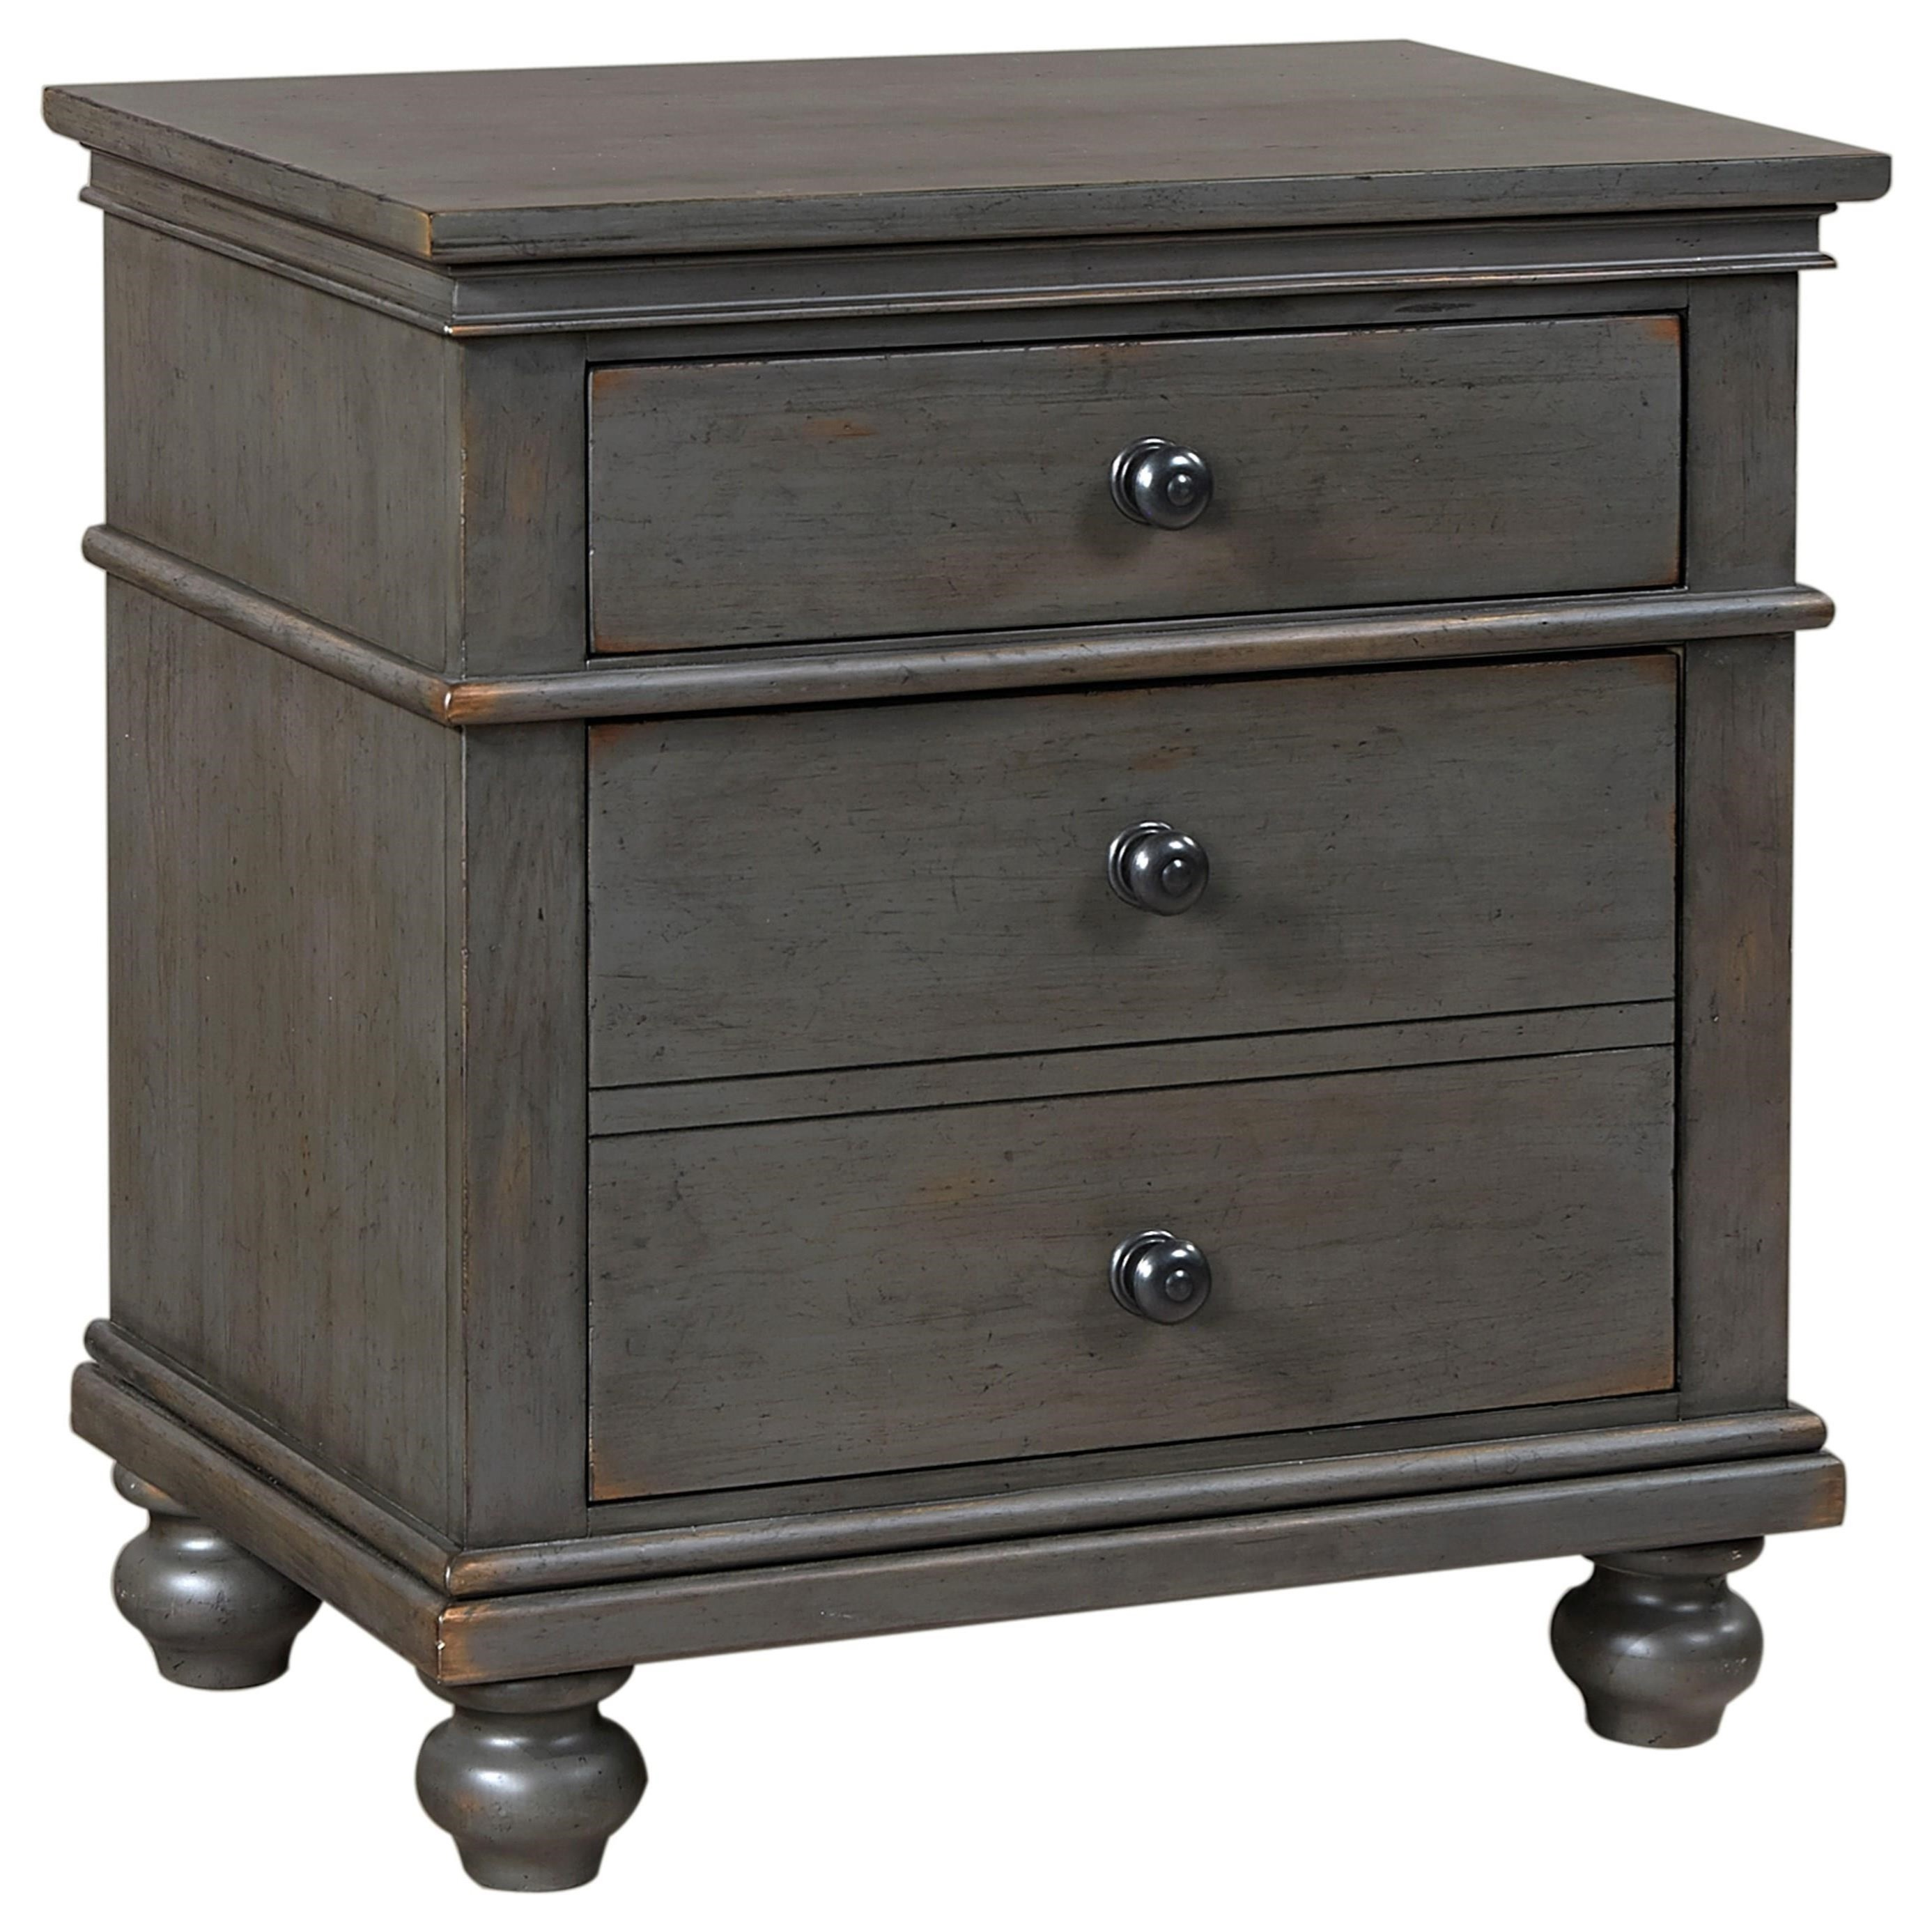 Aspenhome Oxford 2 Drawer Nightstand - Item Number: I07-450-PEP